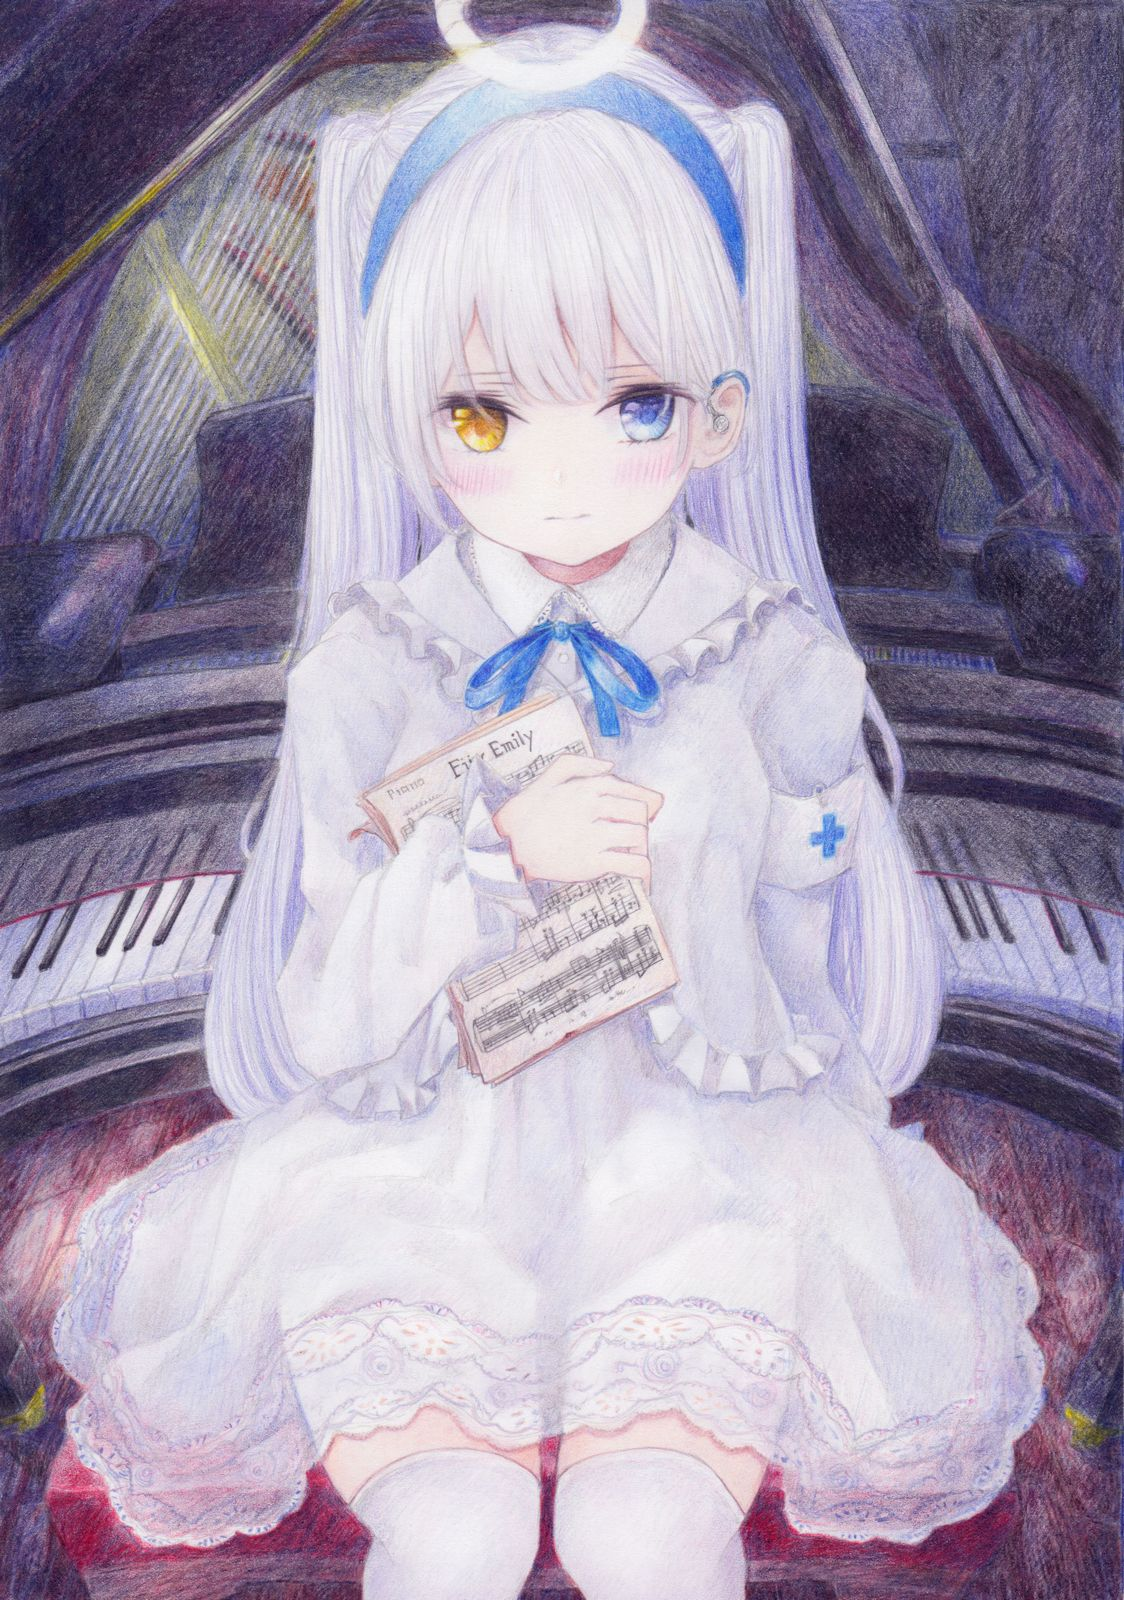 armband blush colored_pencil_(medium) darkkanan dress eyes_visible_through_hair graphite_(medium) hairband halo highres indoors instrument lolita_fashion long_hair looking_at_viewer multicolored multicolored_eyes original piano sitting thigh-highs traditional_media twintails white_dress white_hair white_legwear